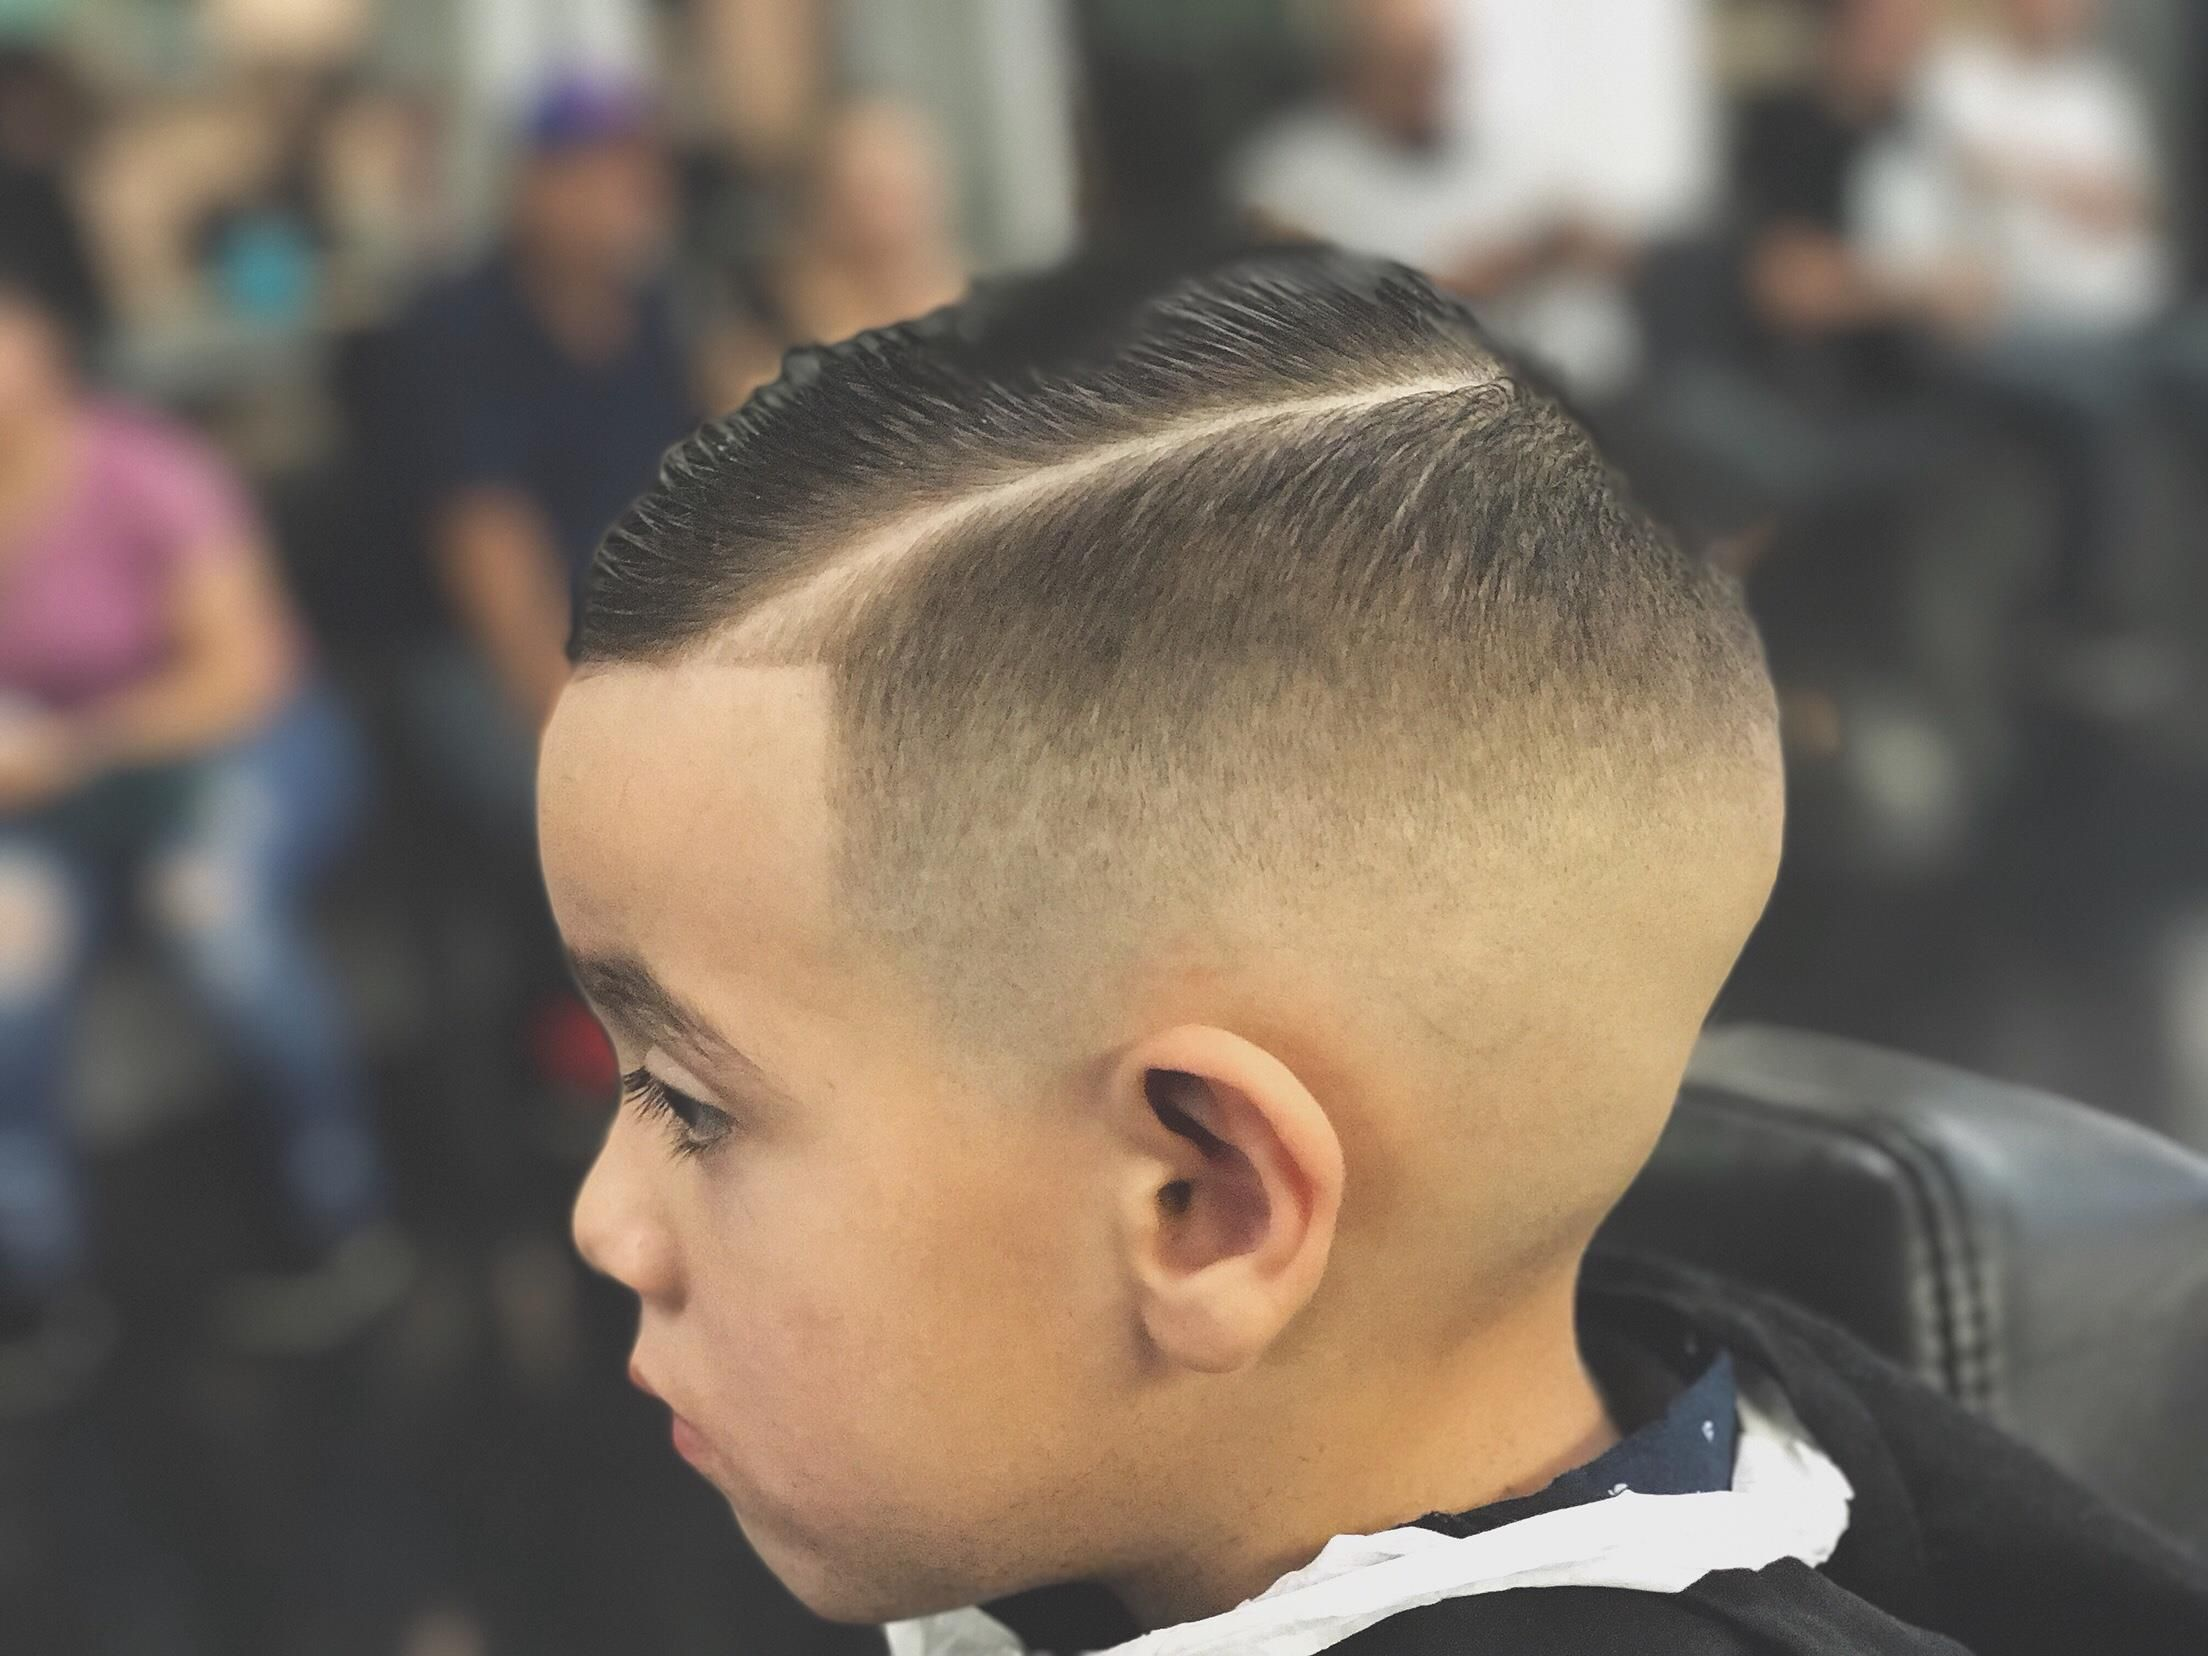 Pin On Hair Cuts Styles Ideas For Kids